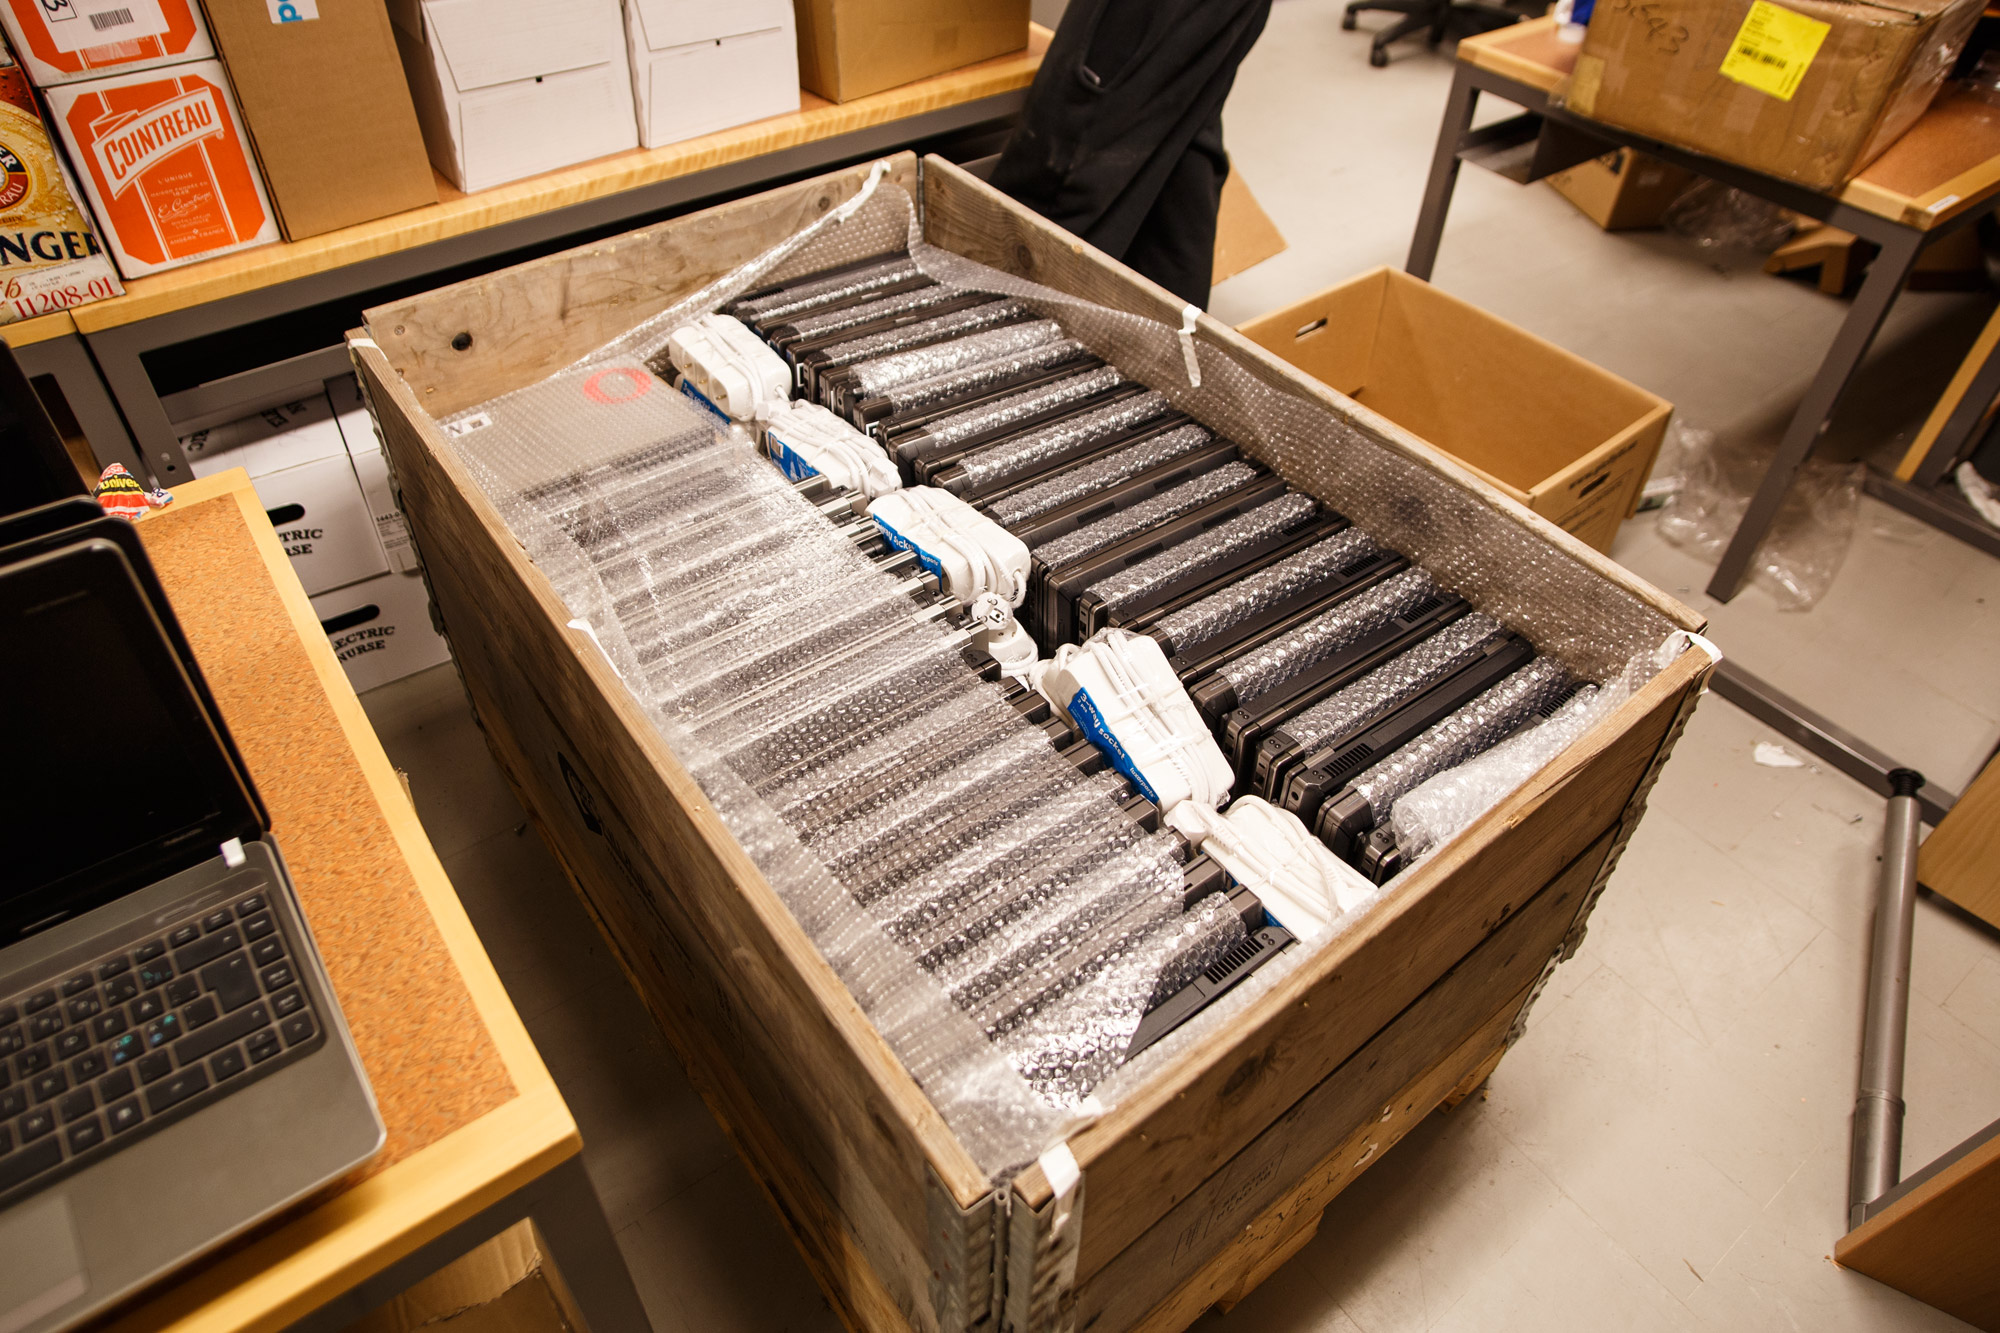 The computers being packed on the pallet.